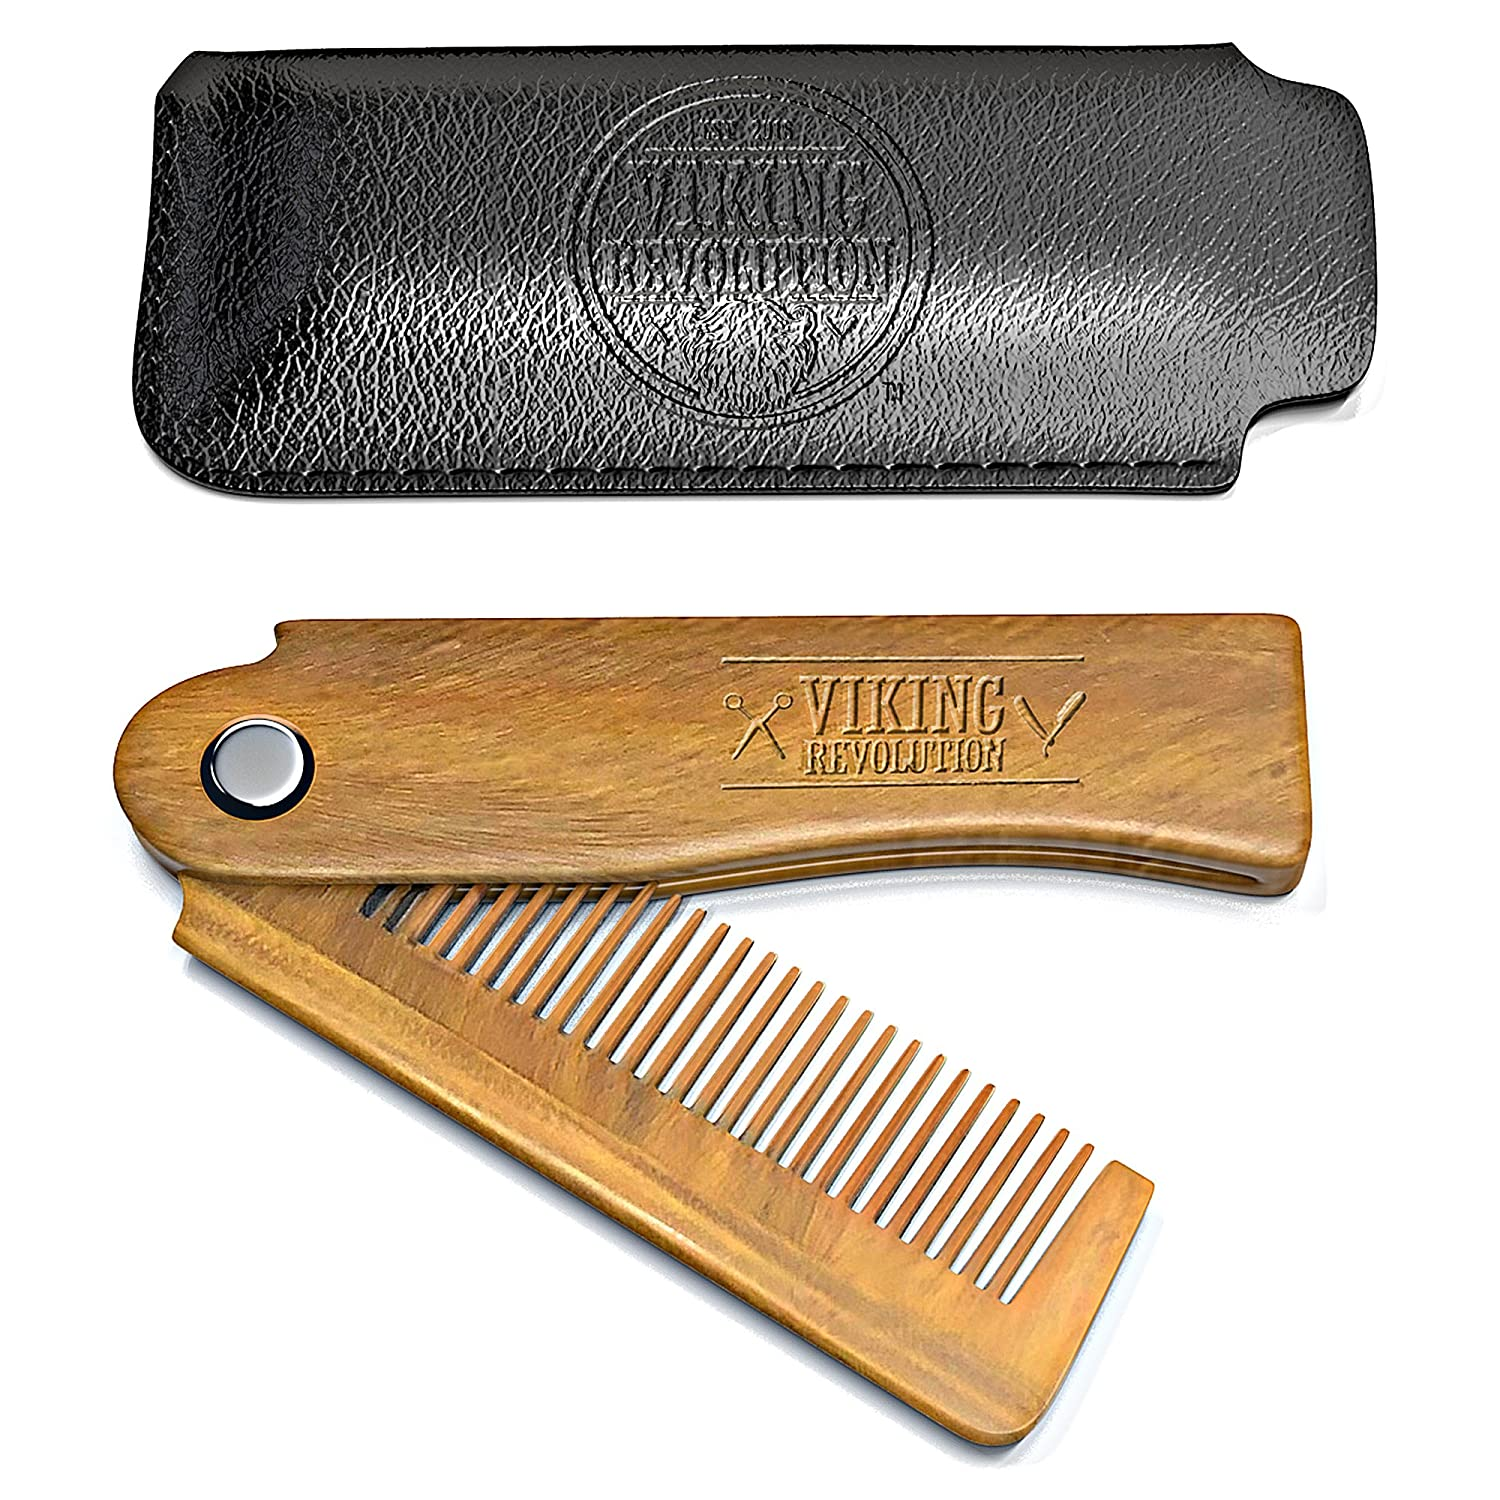 Folding Beard Comb w/Carrying Pouch for Men - All Natural Wooden Beard Comb  w/Gift Box - Green